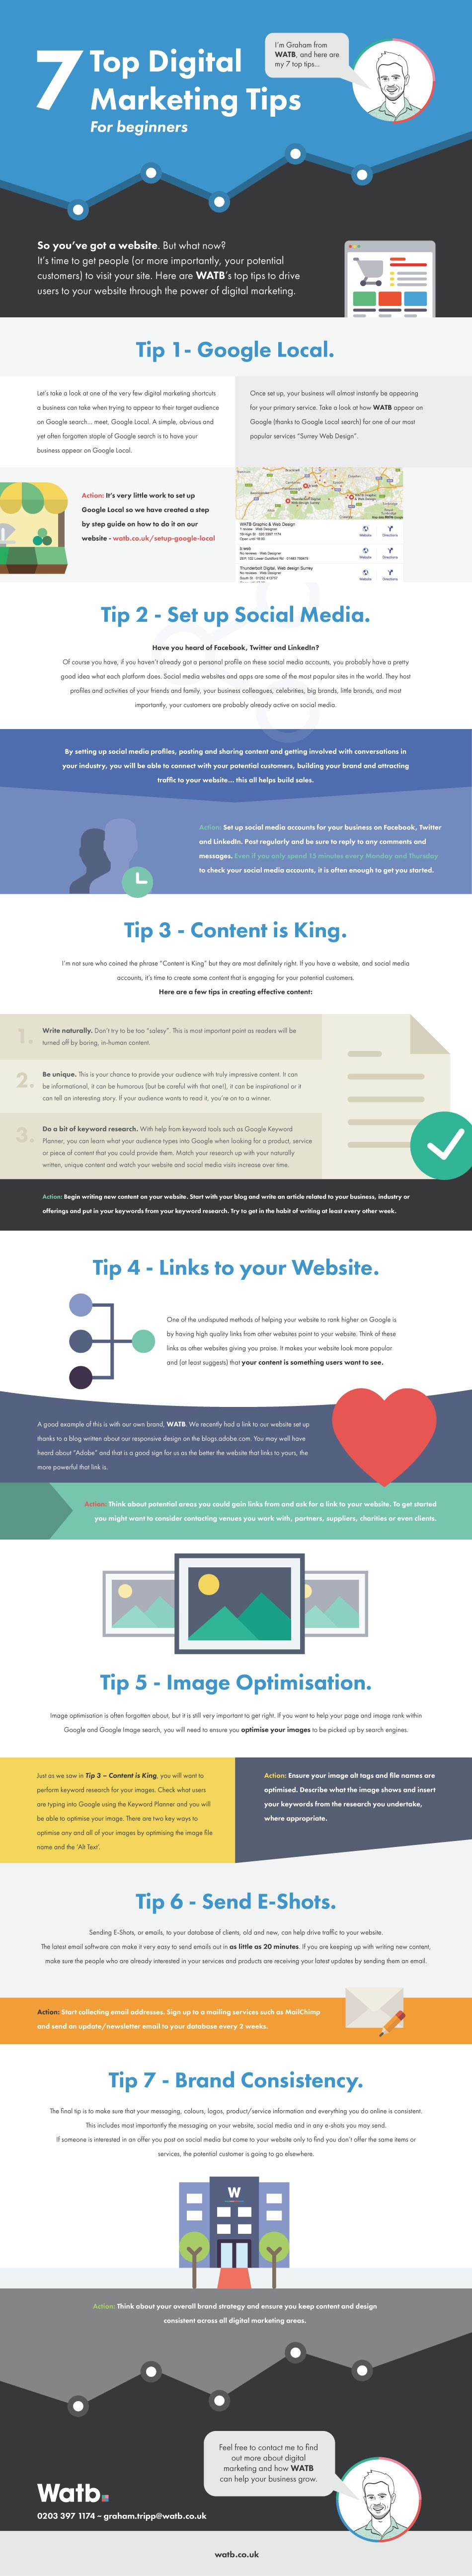 7 Top Digital Marketing Tips - #infographic